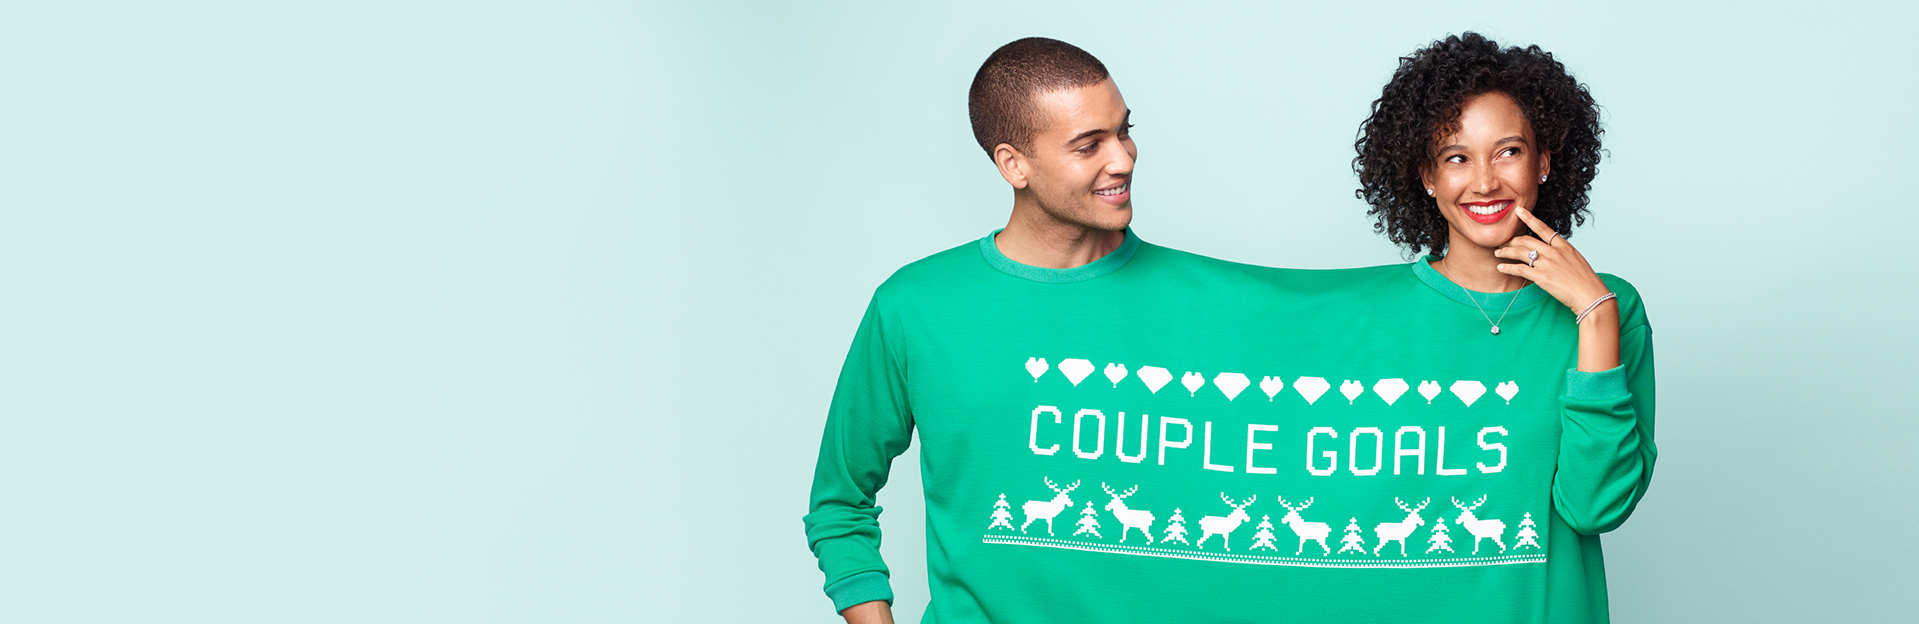 Couple wearing 1 oversized sweater that says 'Couple goals'.